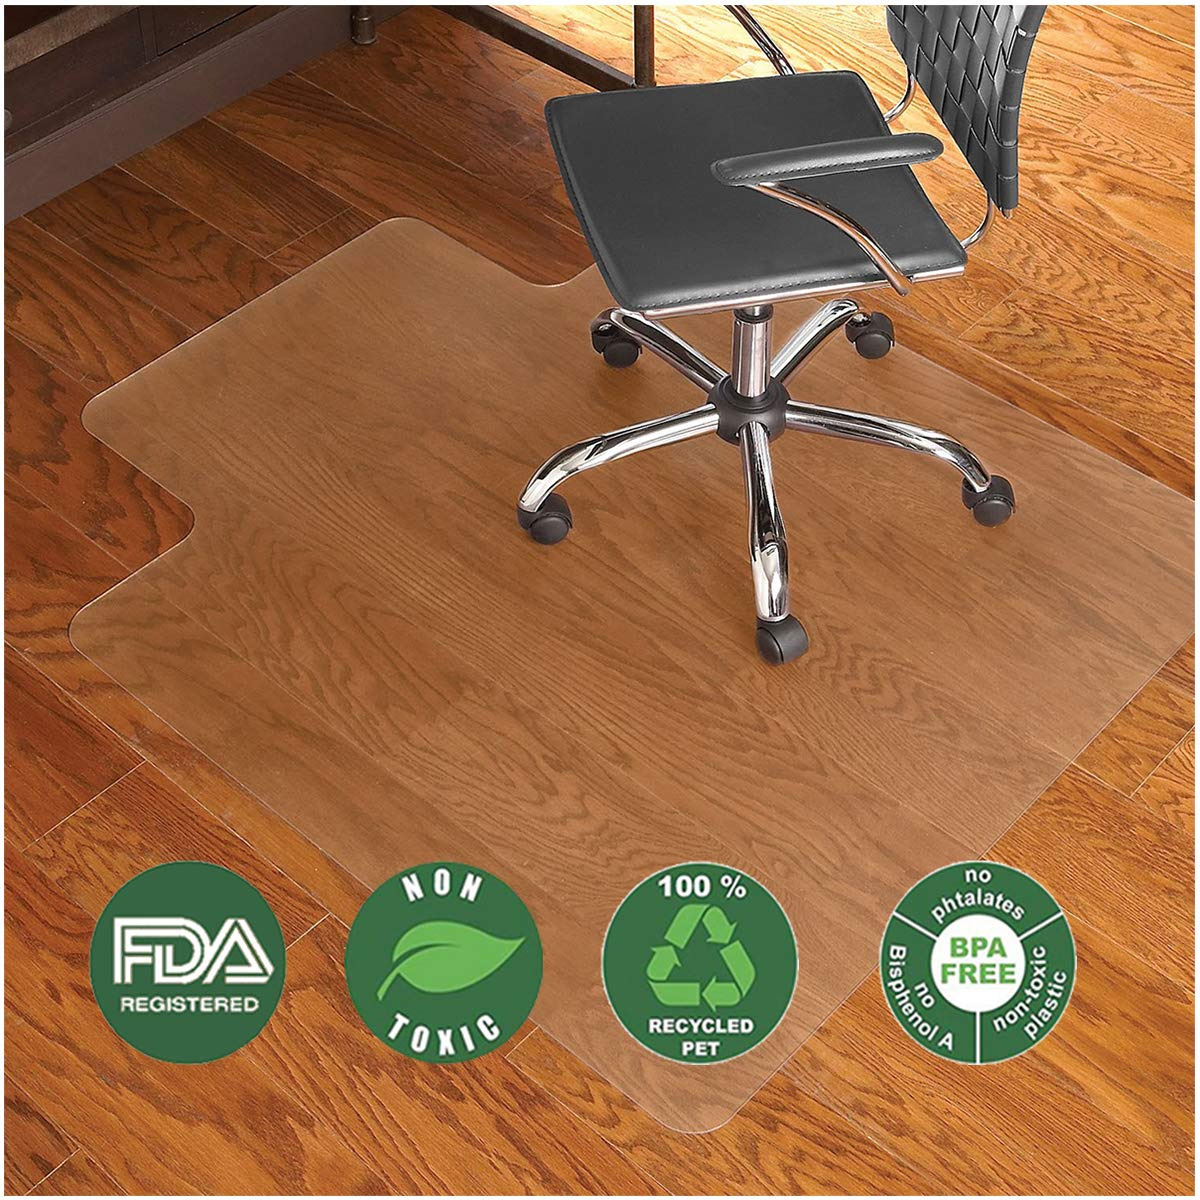 Nontoxic Office Chair Mat for Hard Floor 36'' x 48'' BPA Free Transparent Hardwood Floor Protector Easy Glide for Chairs Flat Without Curling Sturdy Durable Good for Computer Desk Office & Home